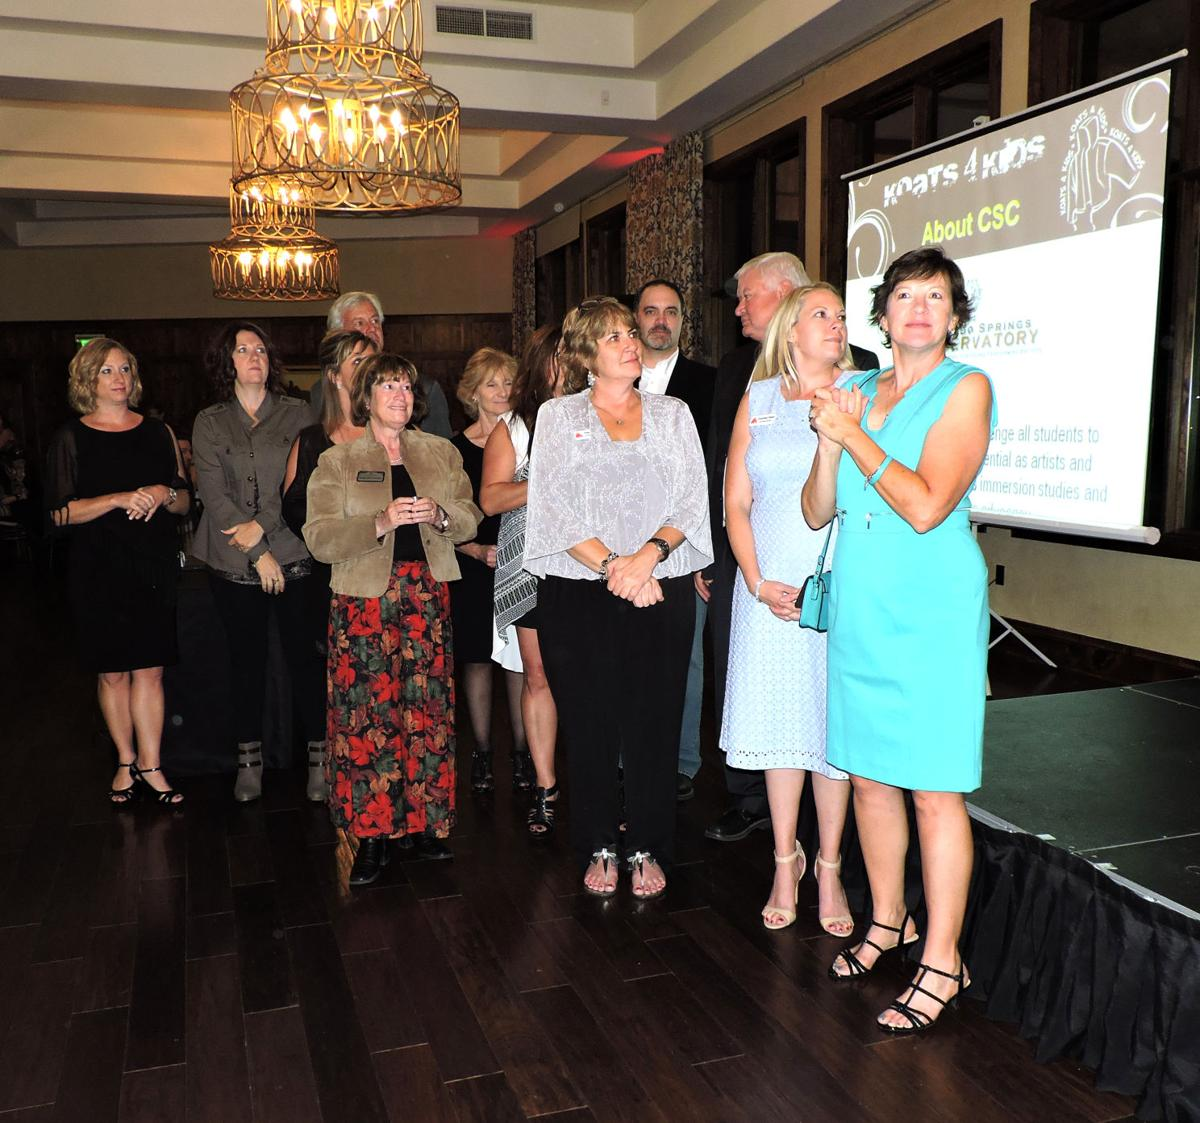 There were cheers for the 10th anniversary Koats 4 Kids committee members. 102116 Photo by Linda Navarro